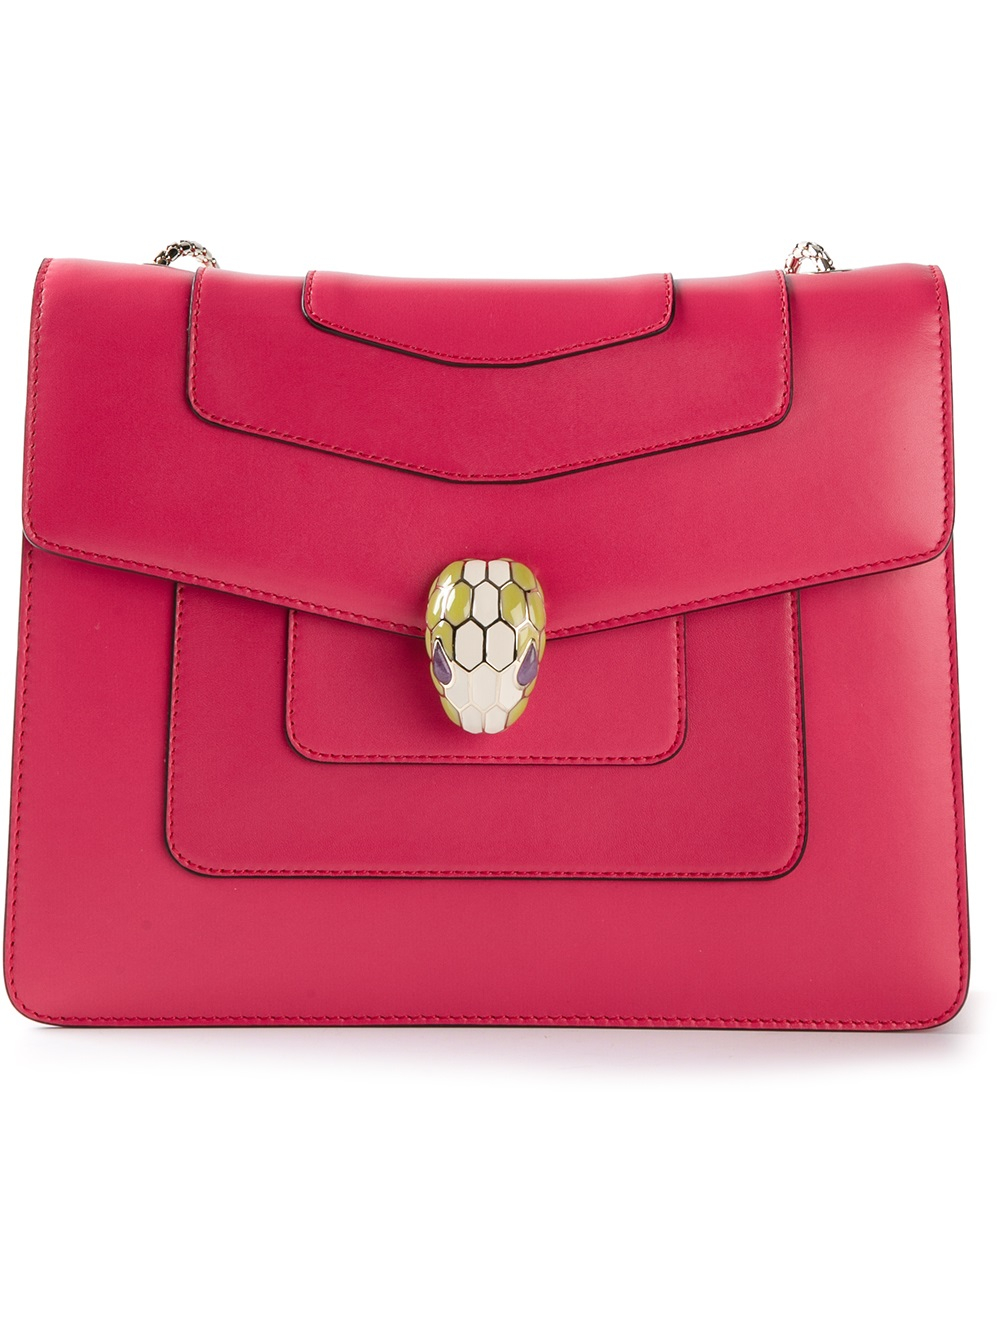 Lyst Bvlgari Serpenti Forever Leather Shoulder Bag In Red